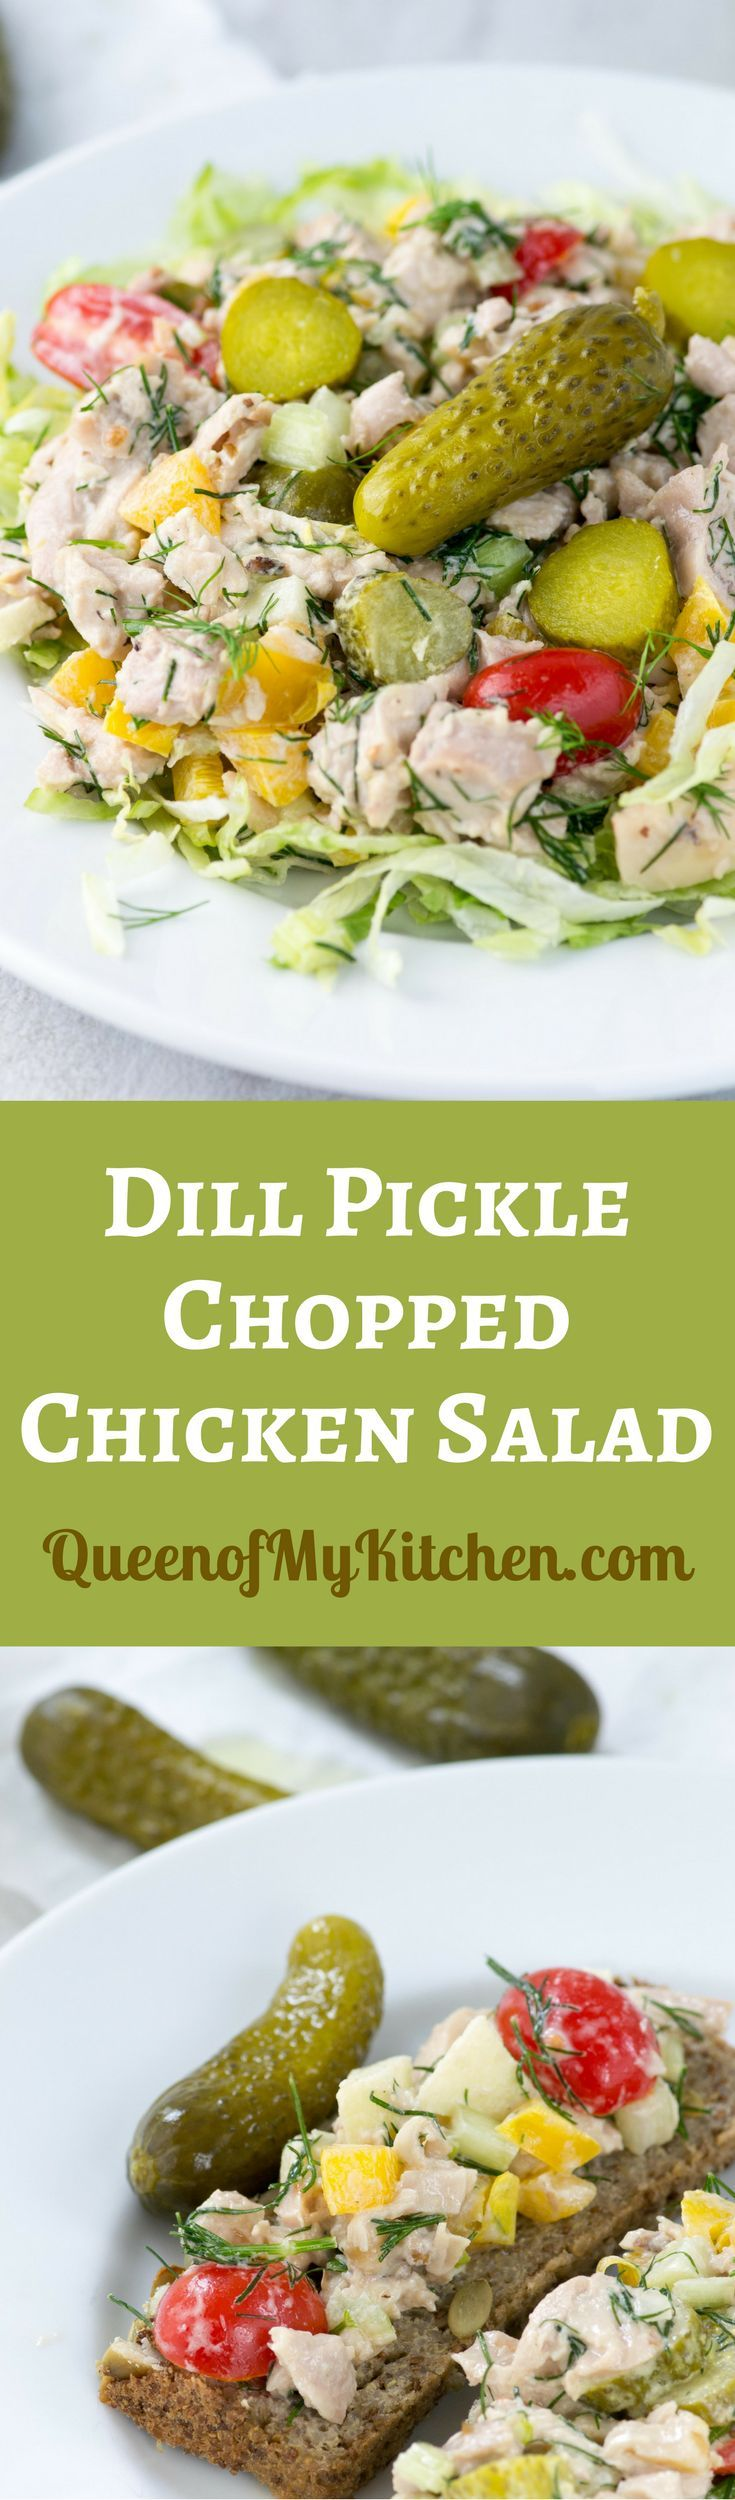 Dill Pickle Chopped Chicken Salad - A sophisticated chicken salad with dill pickle flavor - colorful, delicious, and super crunchy. Gluten-free.   QueenofMyKitchen.com